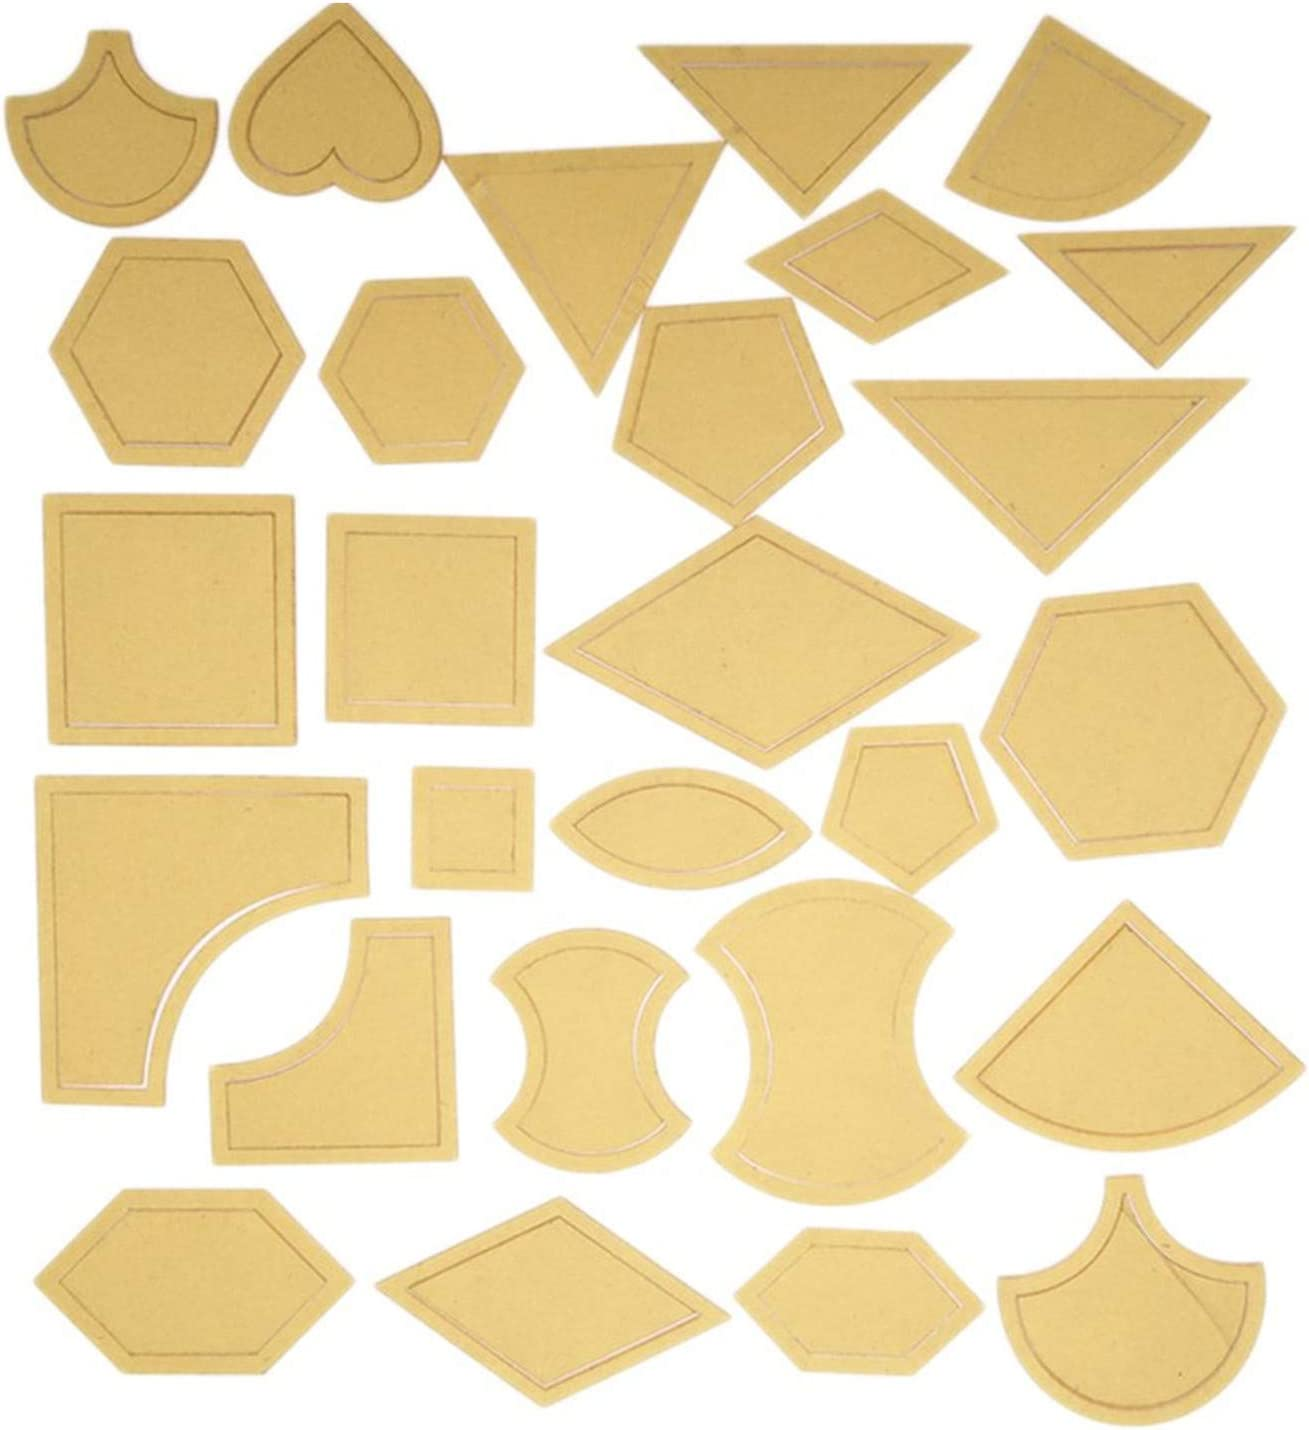 stencil Octagonal quilting   5 template set crafting quilting rulers and templates 4mm acrylic quilt making paper piecing